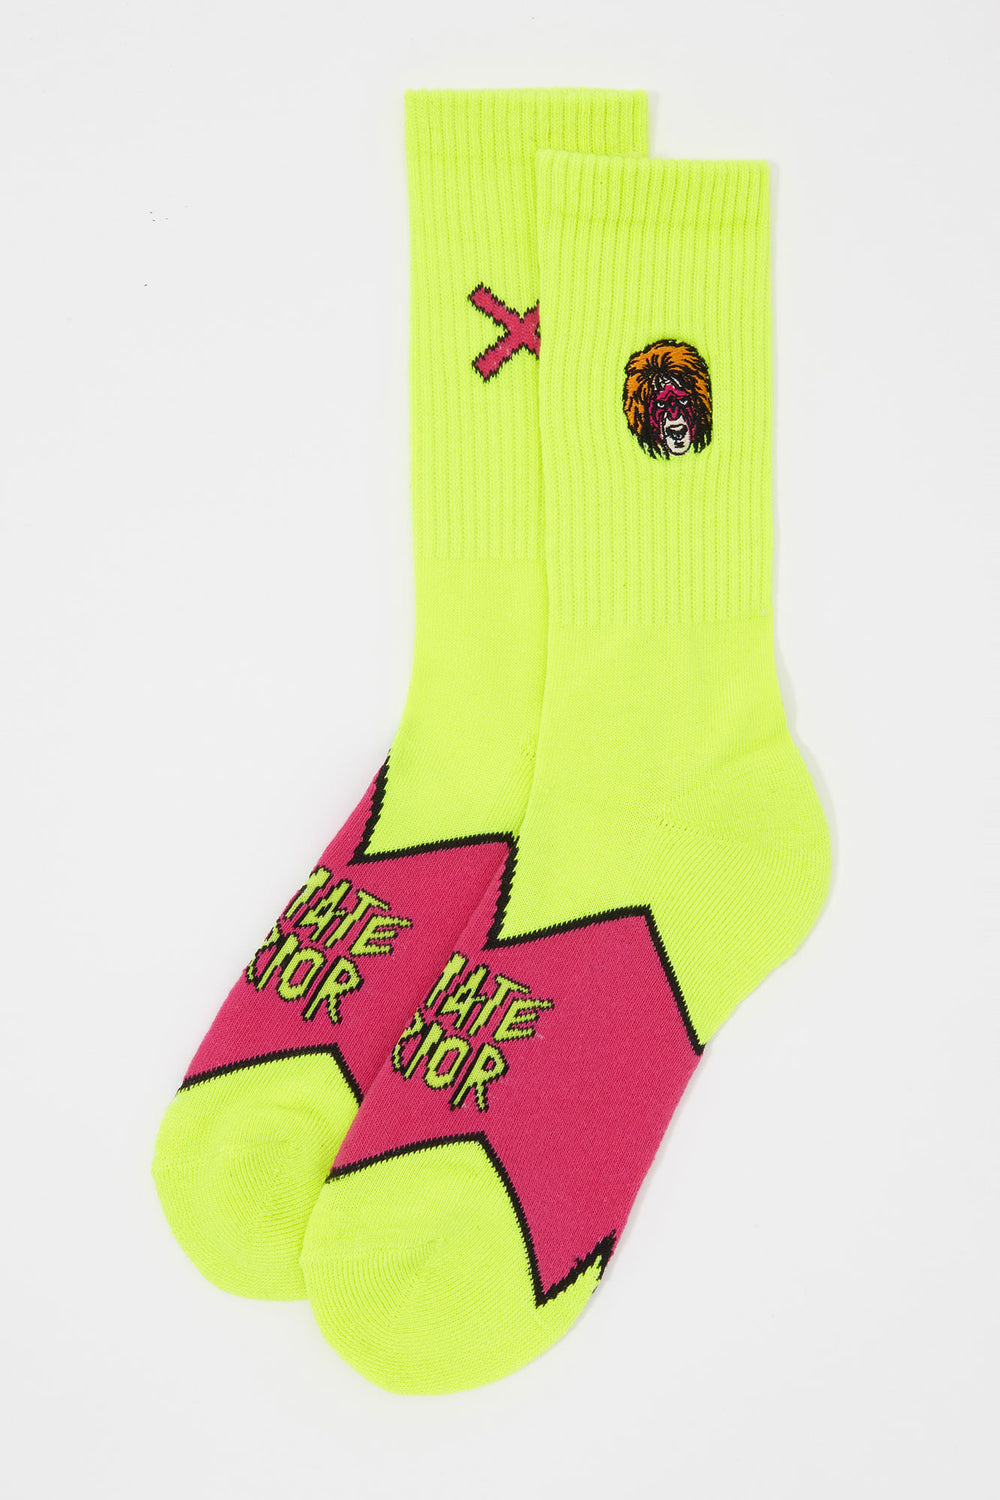 Odd Sox Mens Ultimate Warrior Crew Socks Yellow